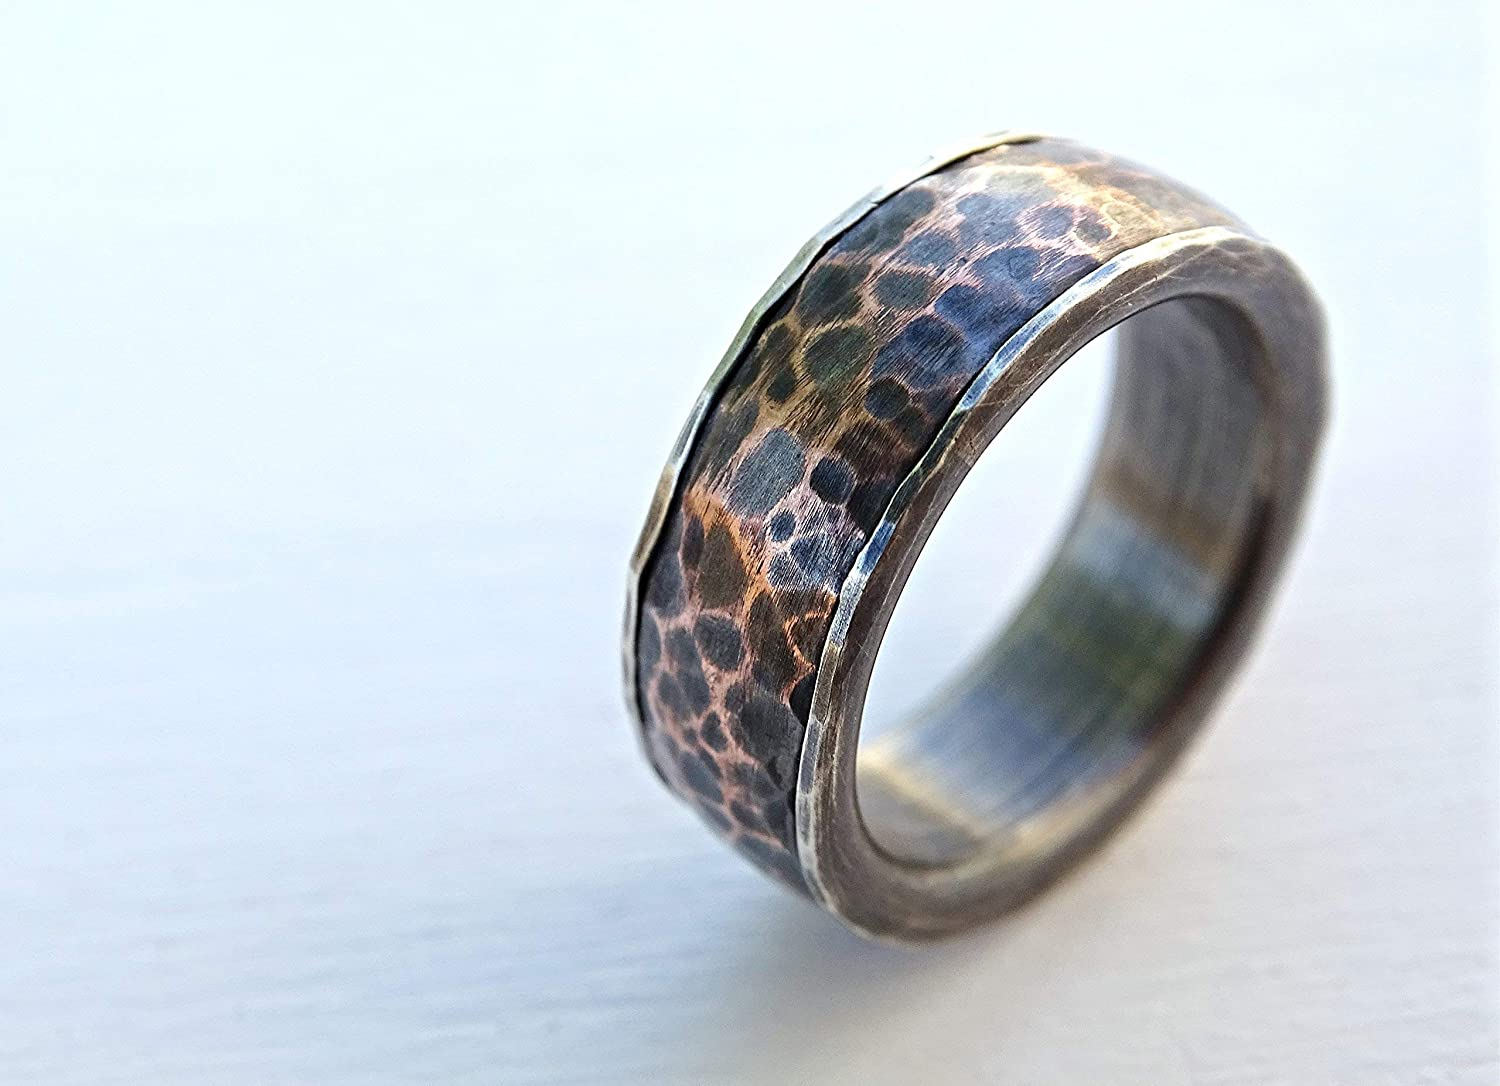 forged ring copper silver wide copper ring wide mens ring copper silver Thick copper and silver ring ONLY  8 US Hammered mens ring